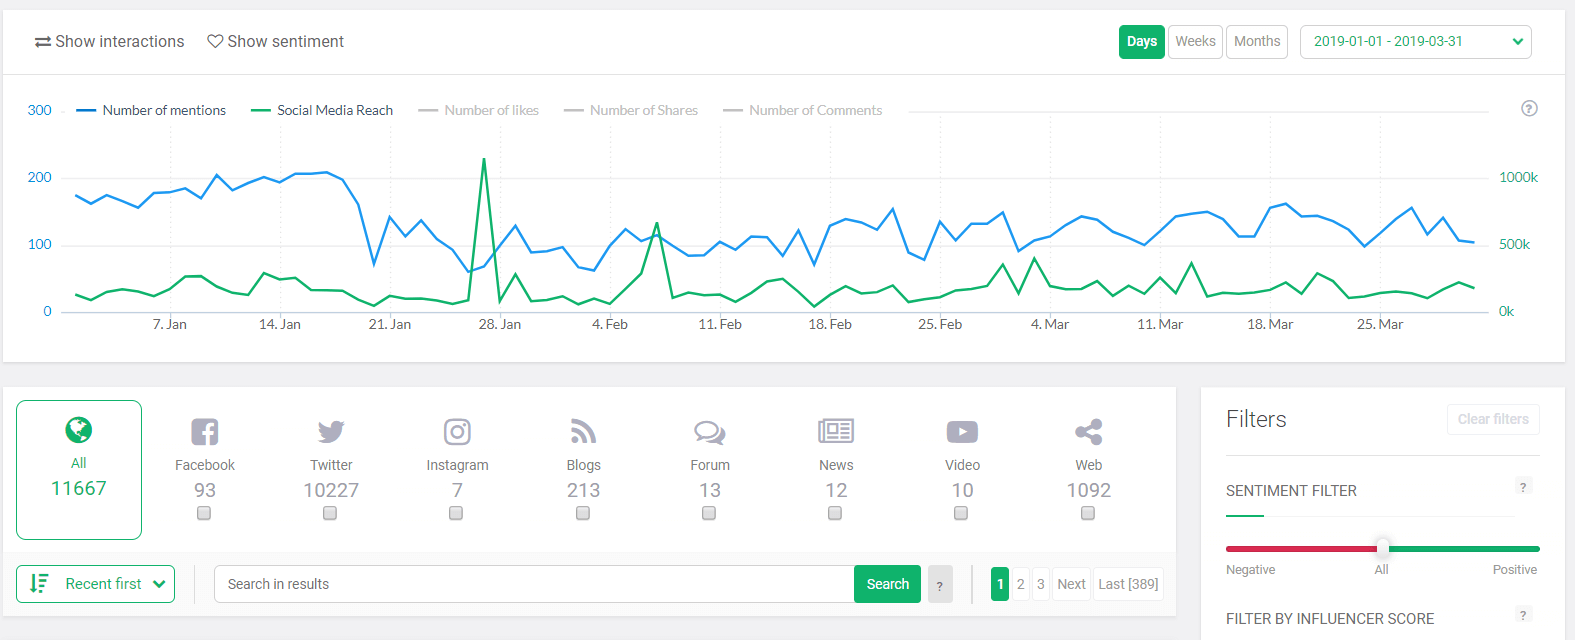 backlinks and mentions over three months